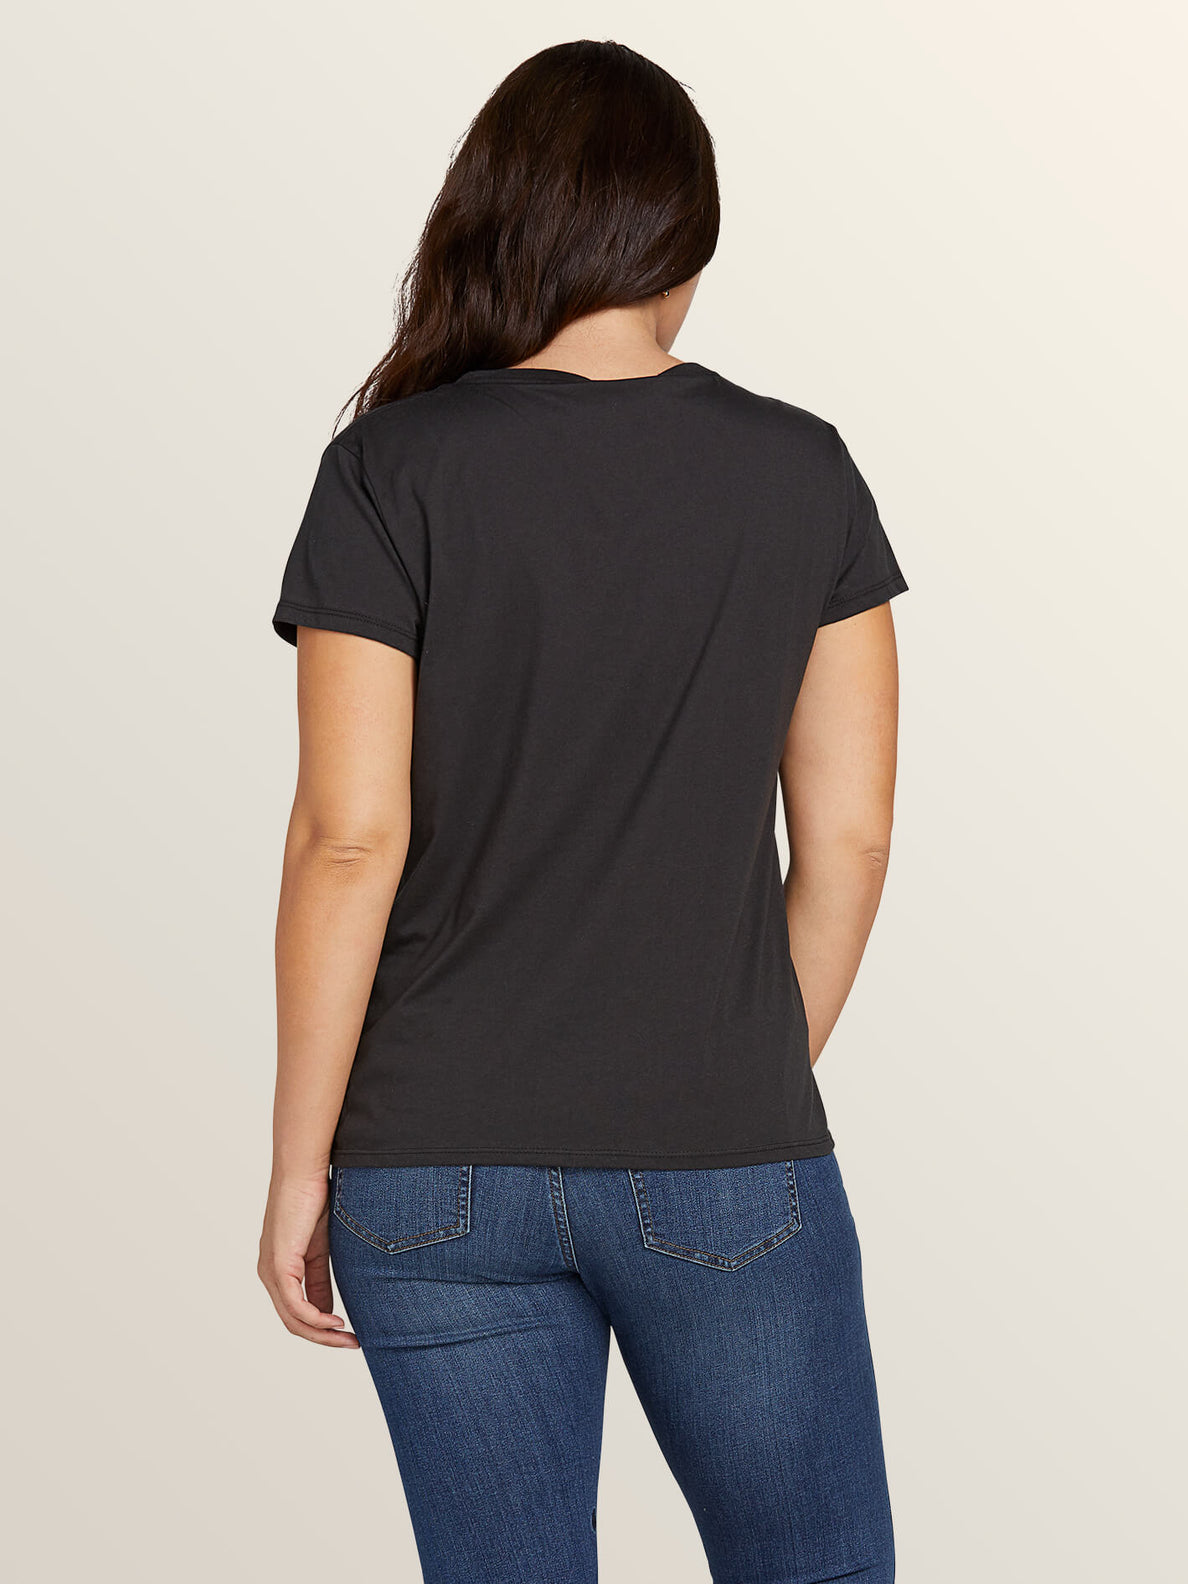 Easy Babe Rad 2 Tee In Black, Back Extended Size View